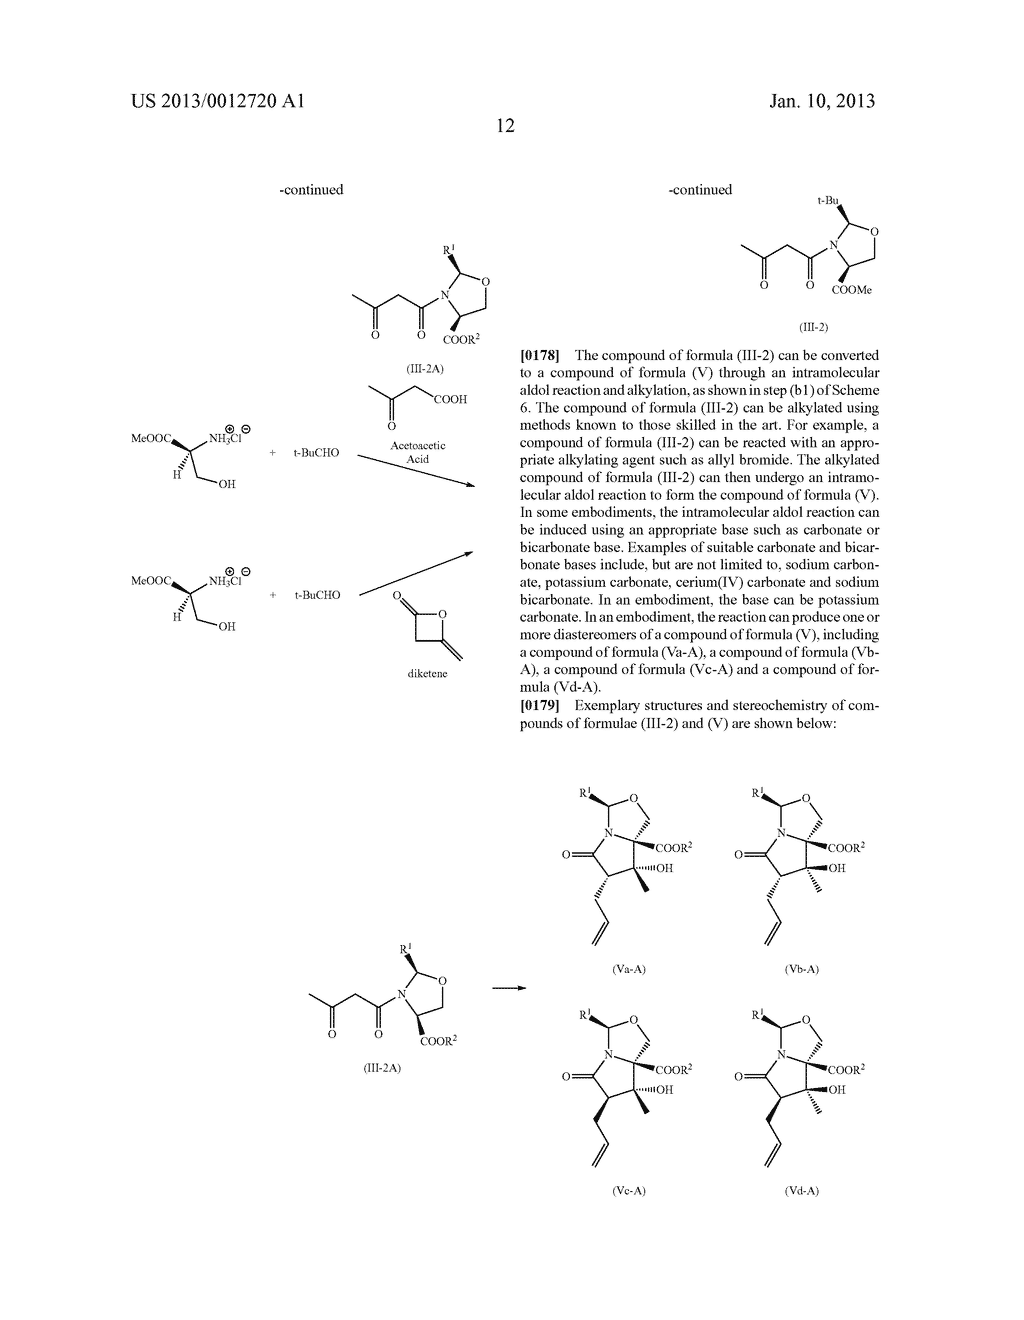 TOTAL SYNTHESIS OF SALINOSPORAMIDE A AND ANALOGS THEREOF - diagram, schematic, and image 74